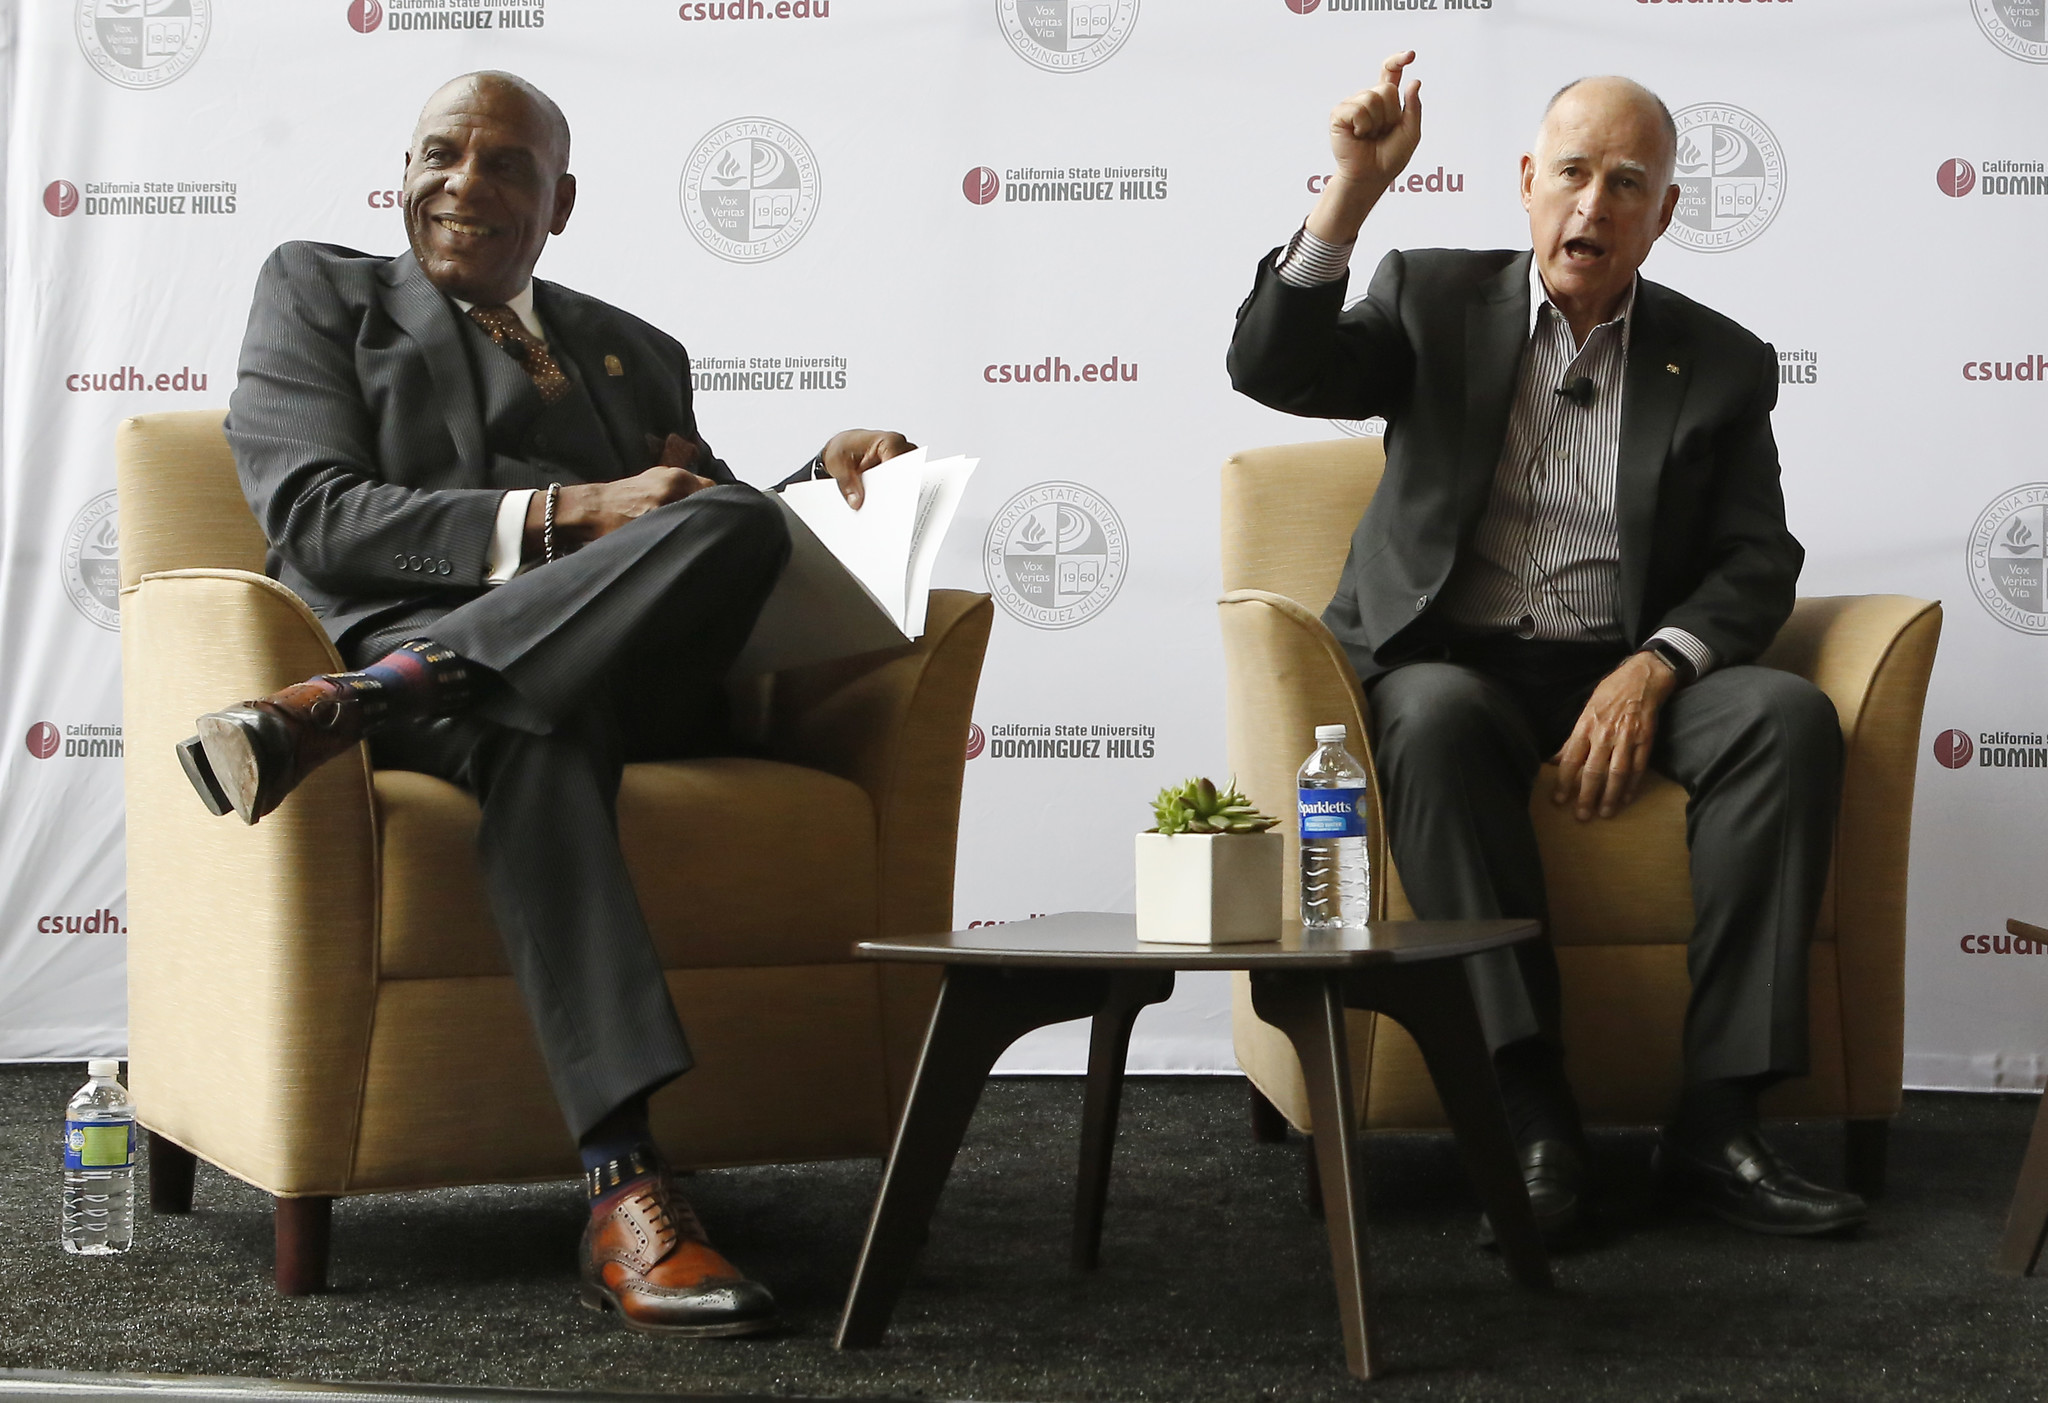 State Sen. Steven Bradford (D-Compton), left, and Gov. Jerry Brown talk about funding for projects under the state transportation bill, SB1, at Cal State Dominguez Hills in Carson. (Christian K. Lee/ Los Angeles Times)